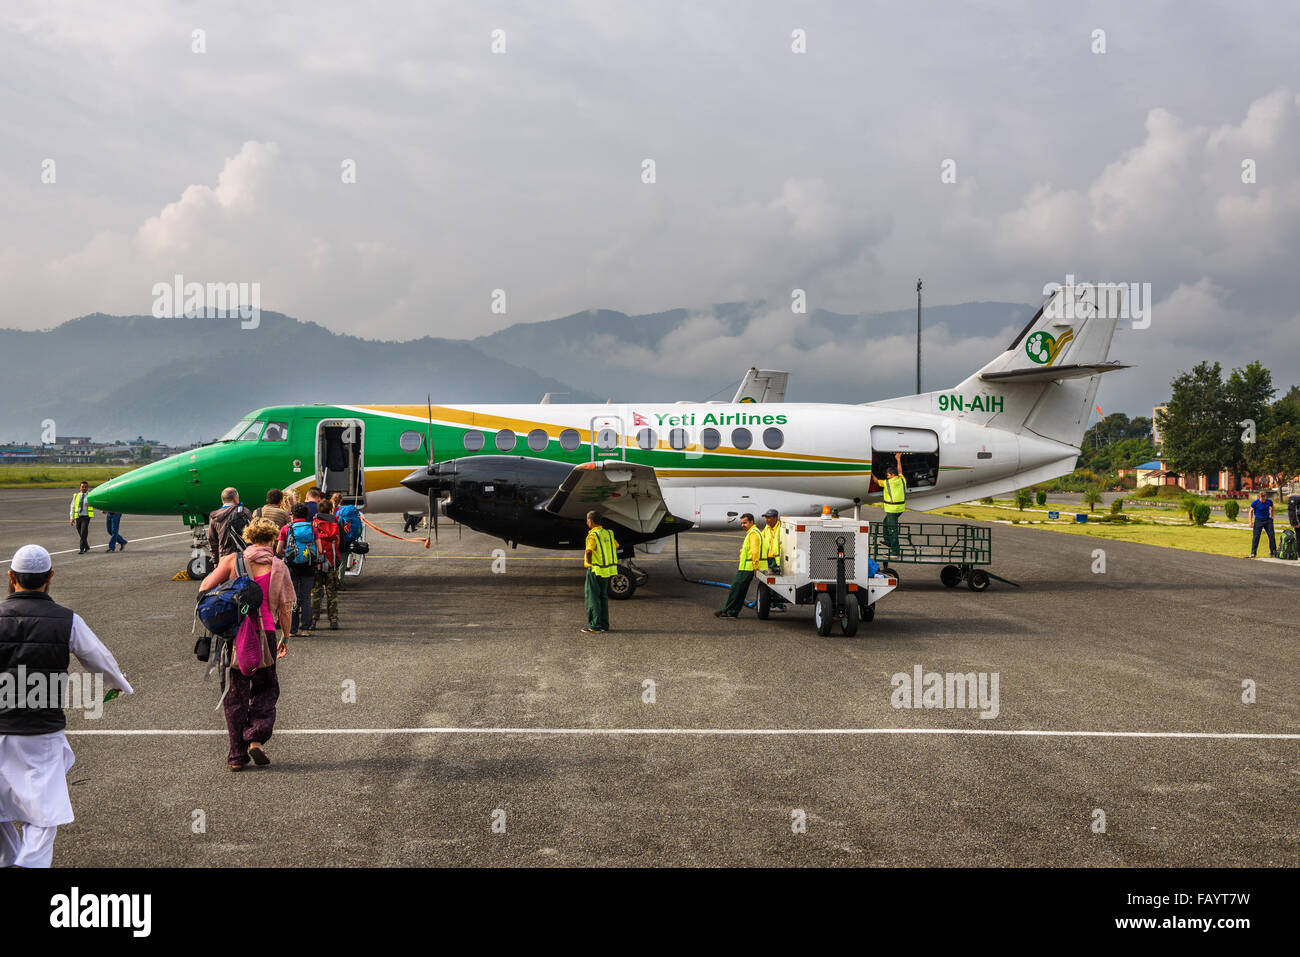 People board a small airplane flying from Pokhara to Kathmandu. - Stock Image